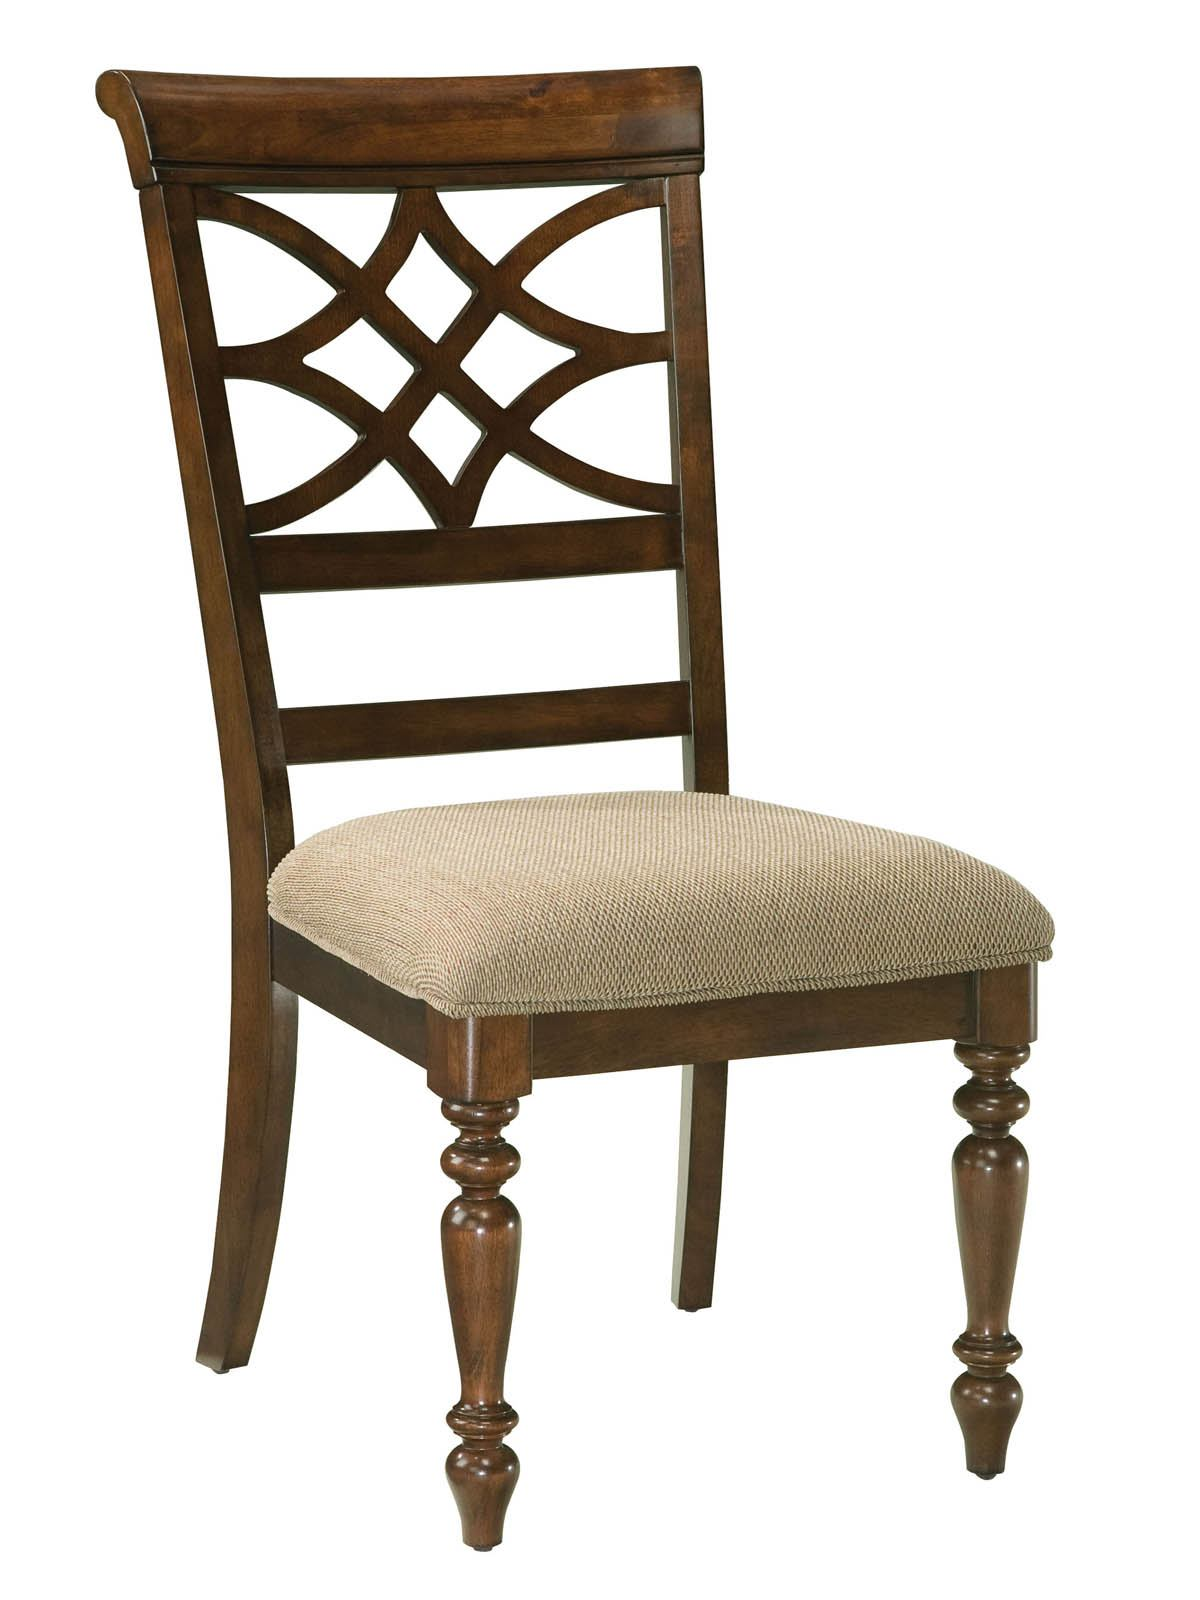 Standard Furniture Woodmont Upholstered Side Chair (Set of 2) in Cherry 19184